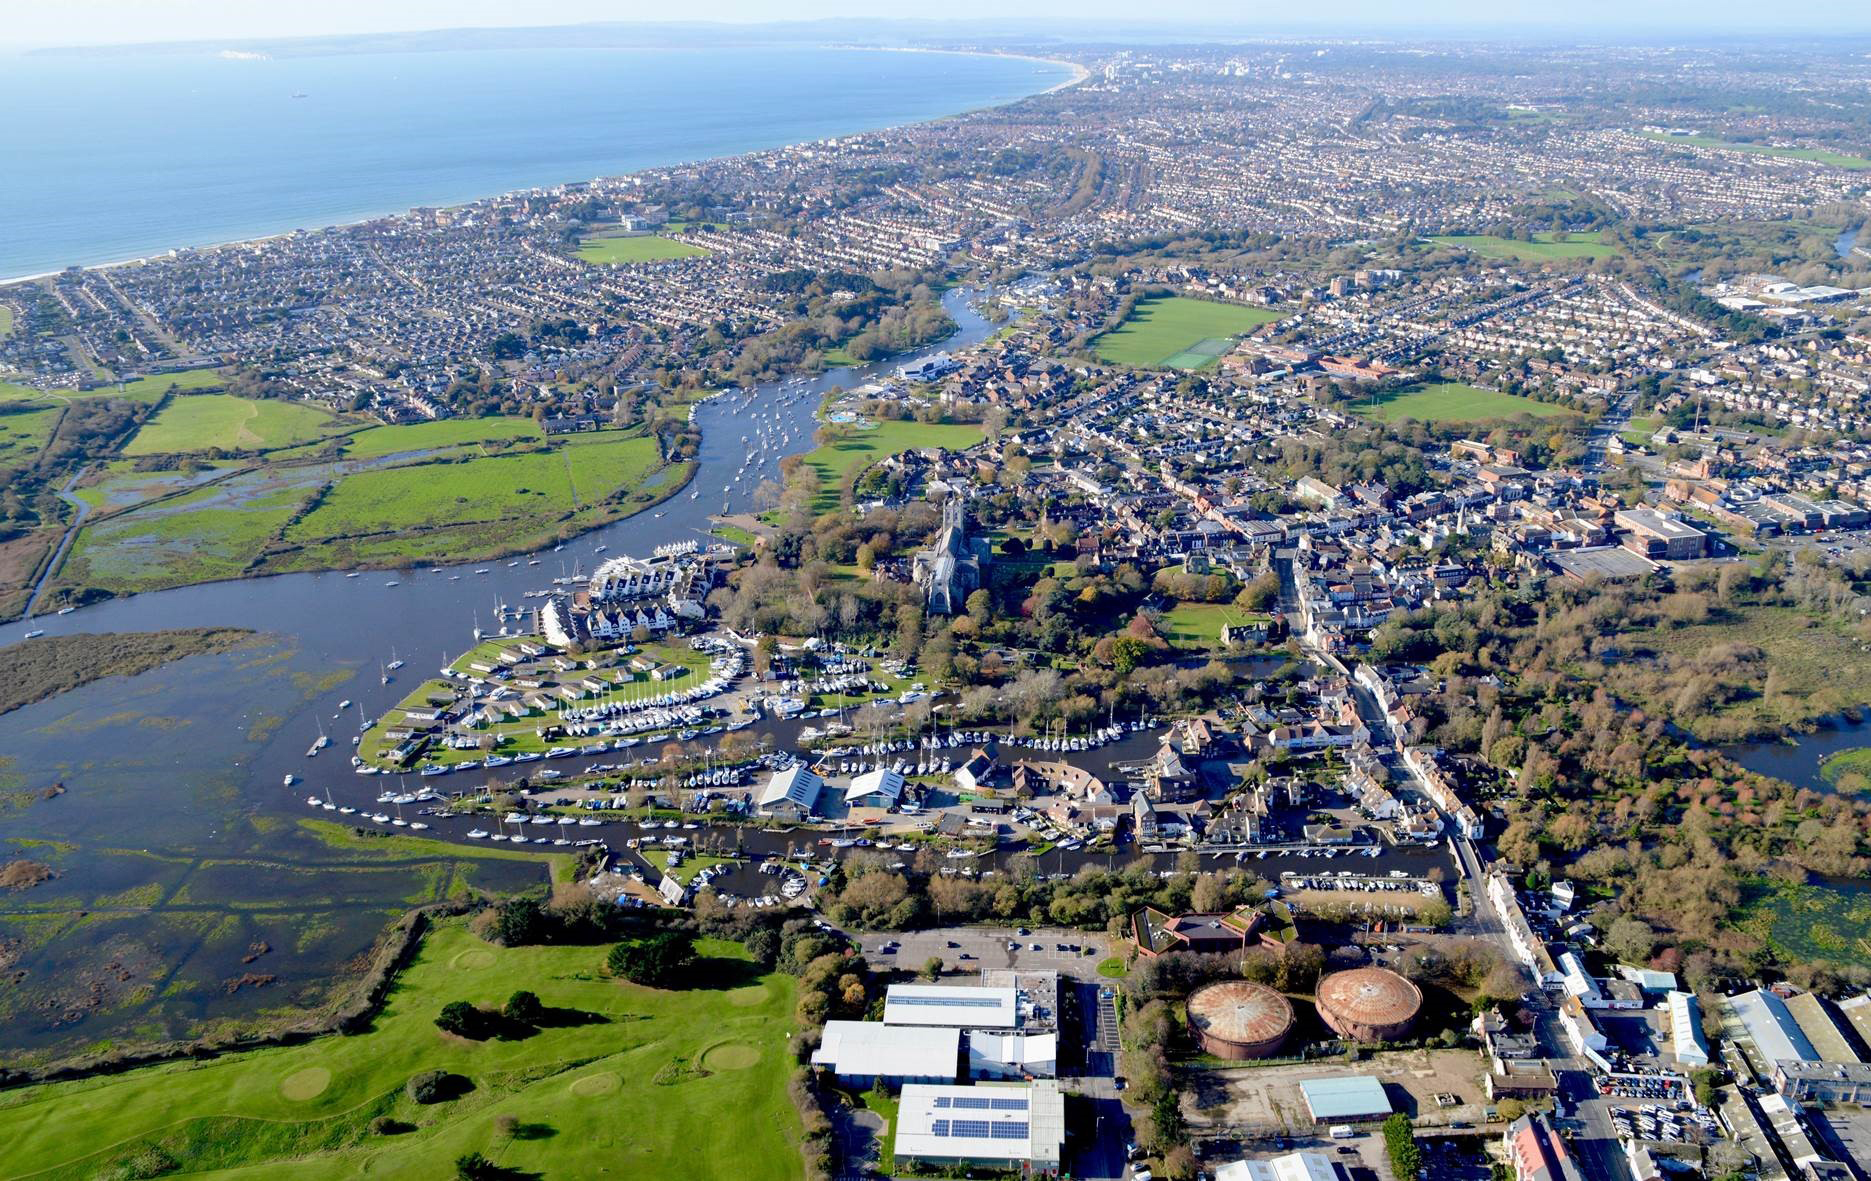 Aerial view of Christchurch merging with Bournemouth, and Poole. Picture by Stephen Bath